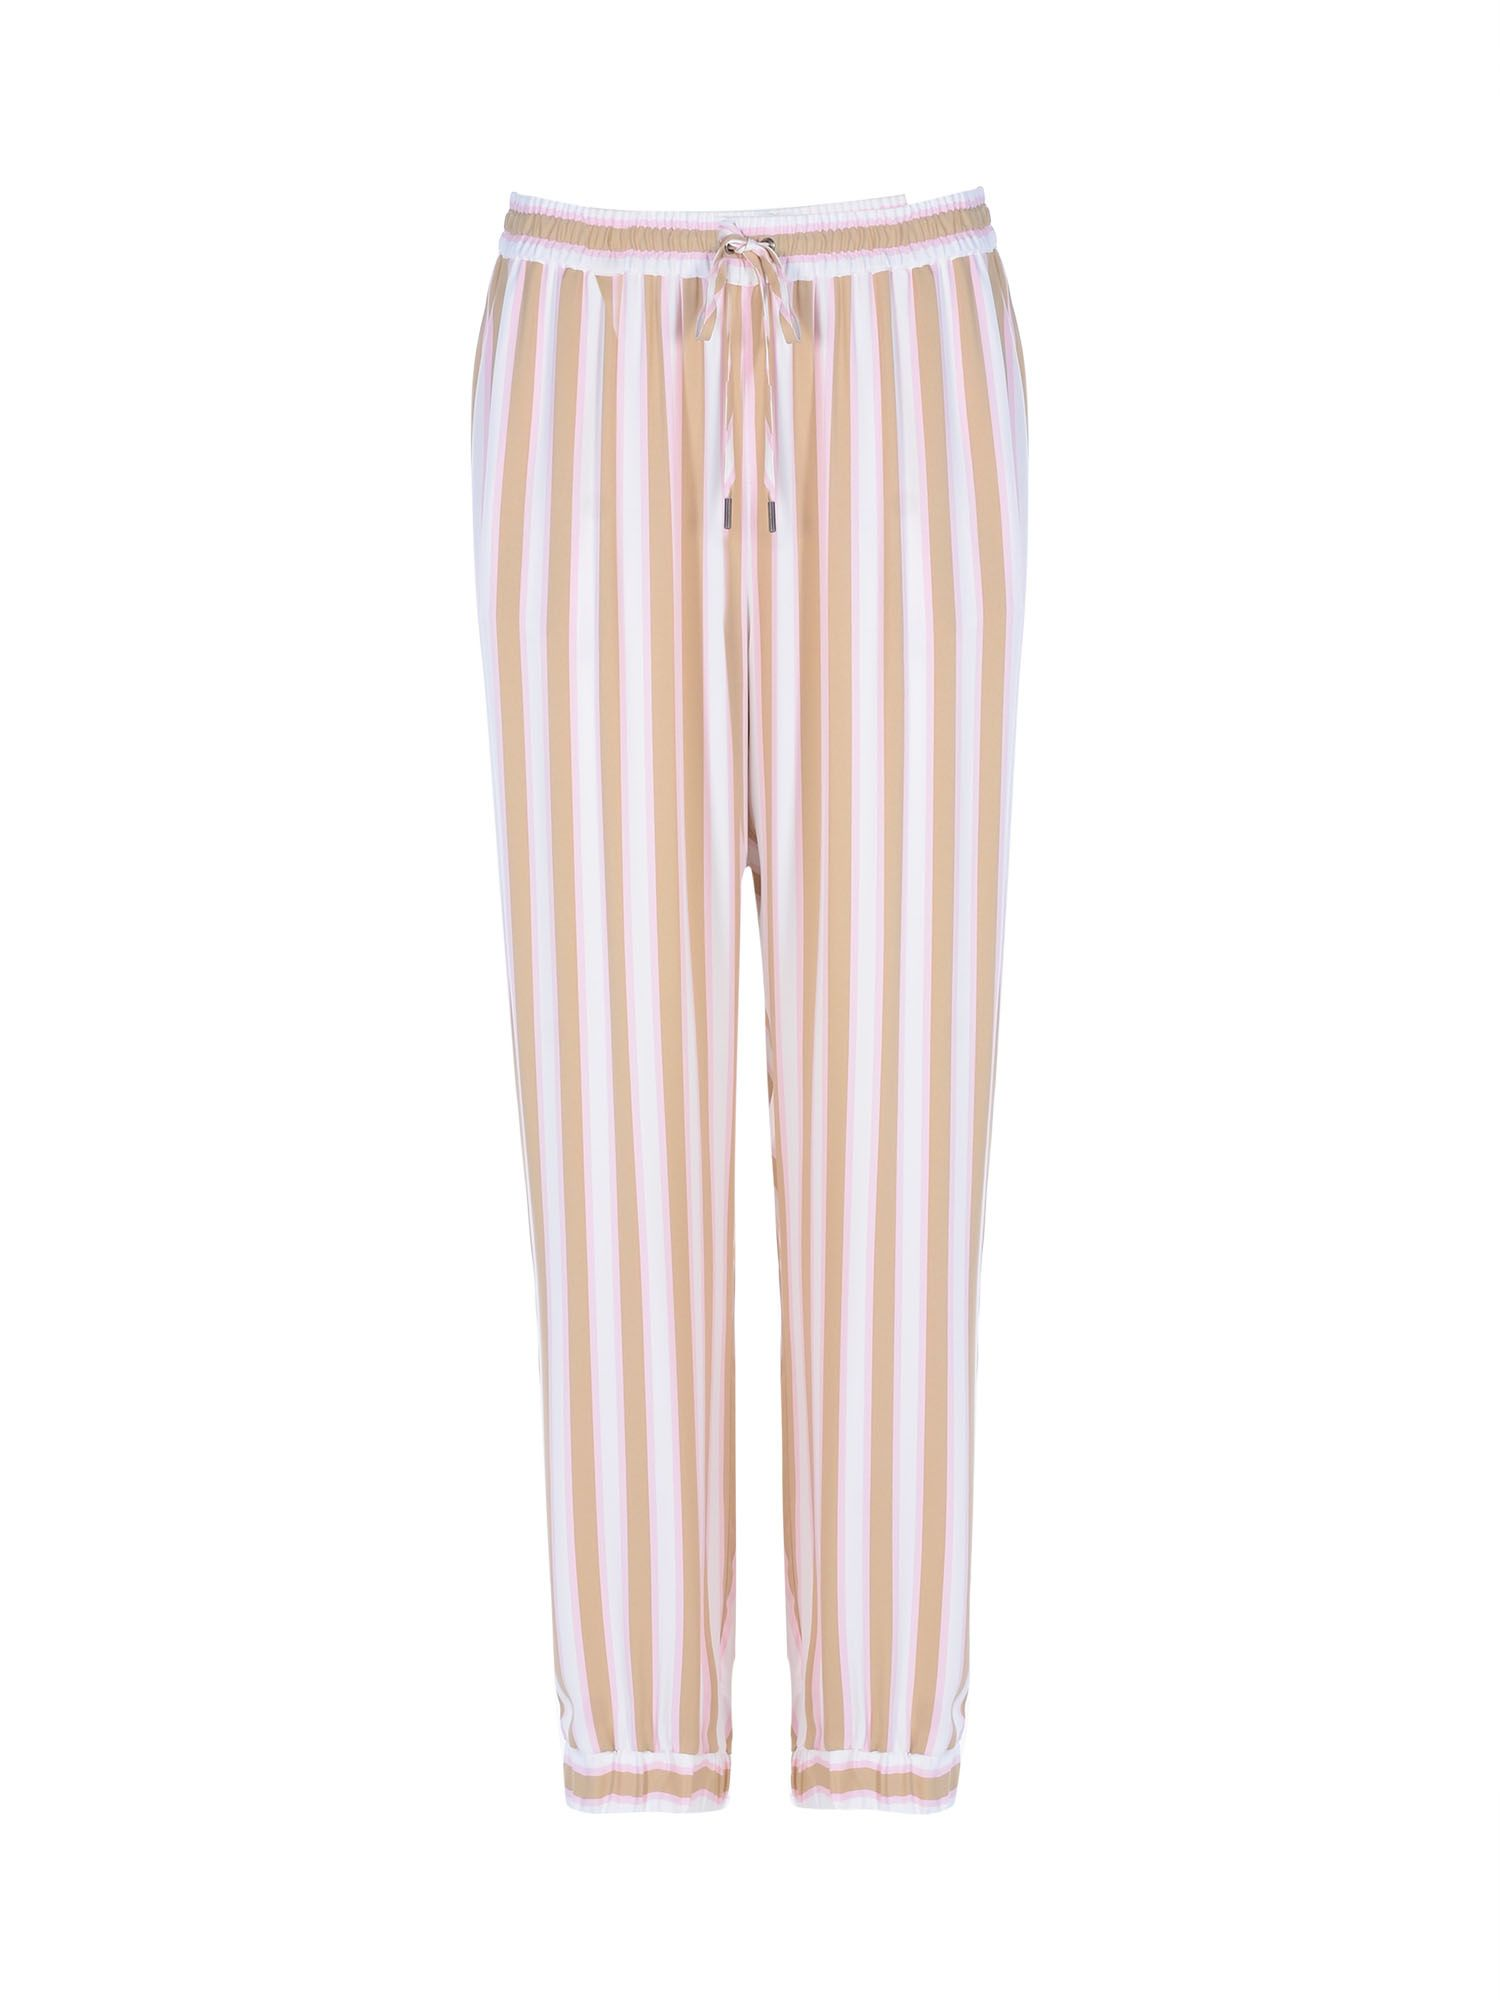 Stefanel Striped Viscose Satin Joggers, Pink